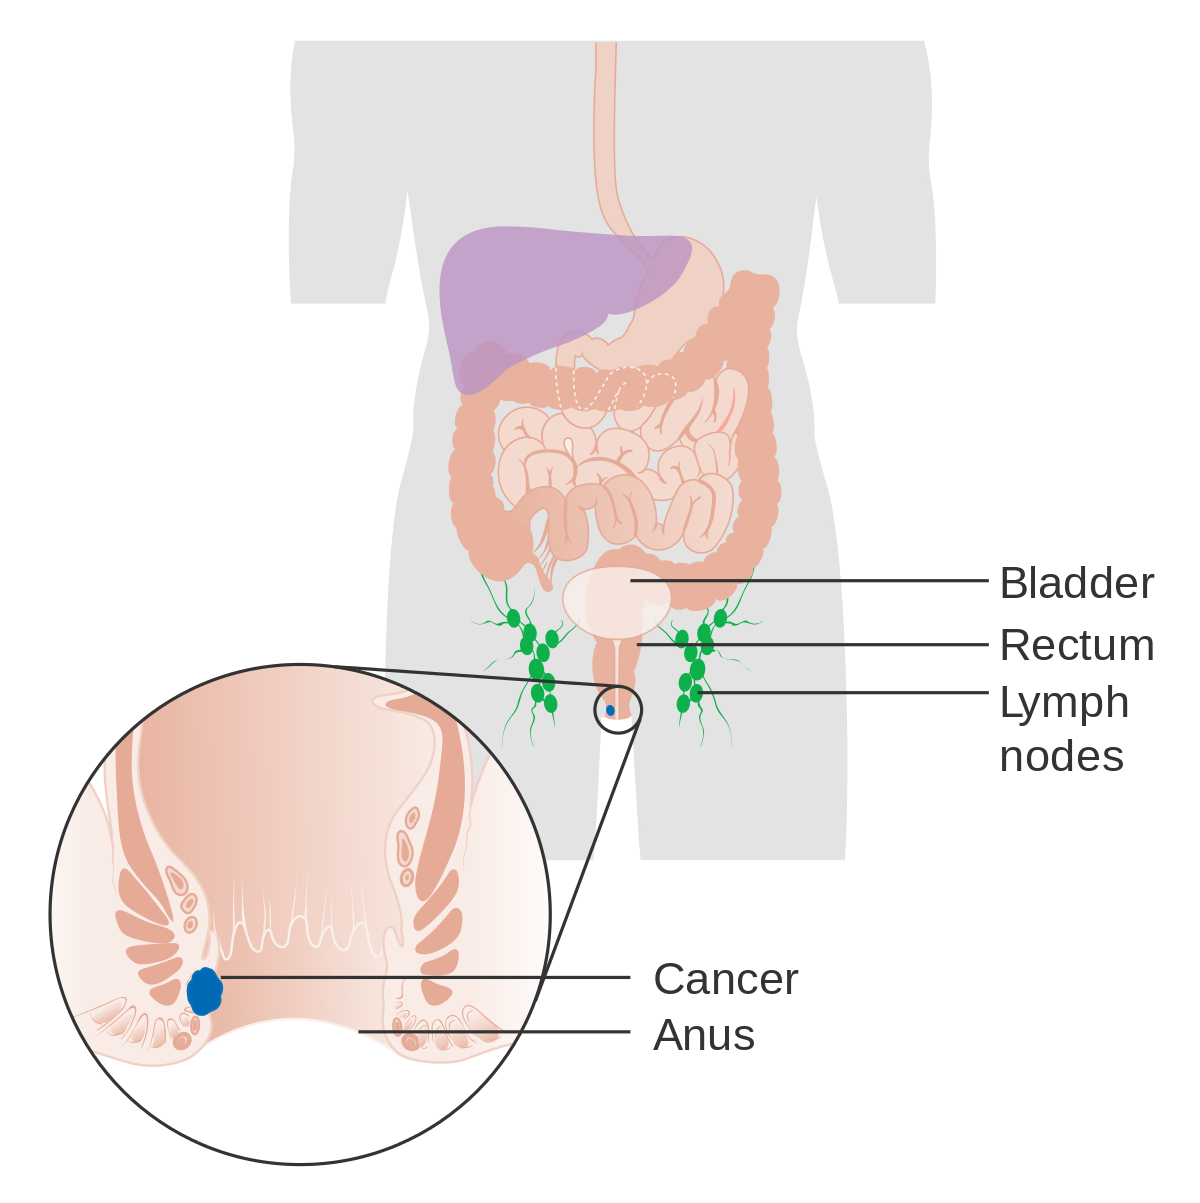 tonsil hpv cancer